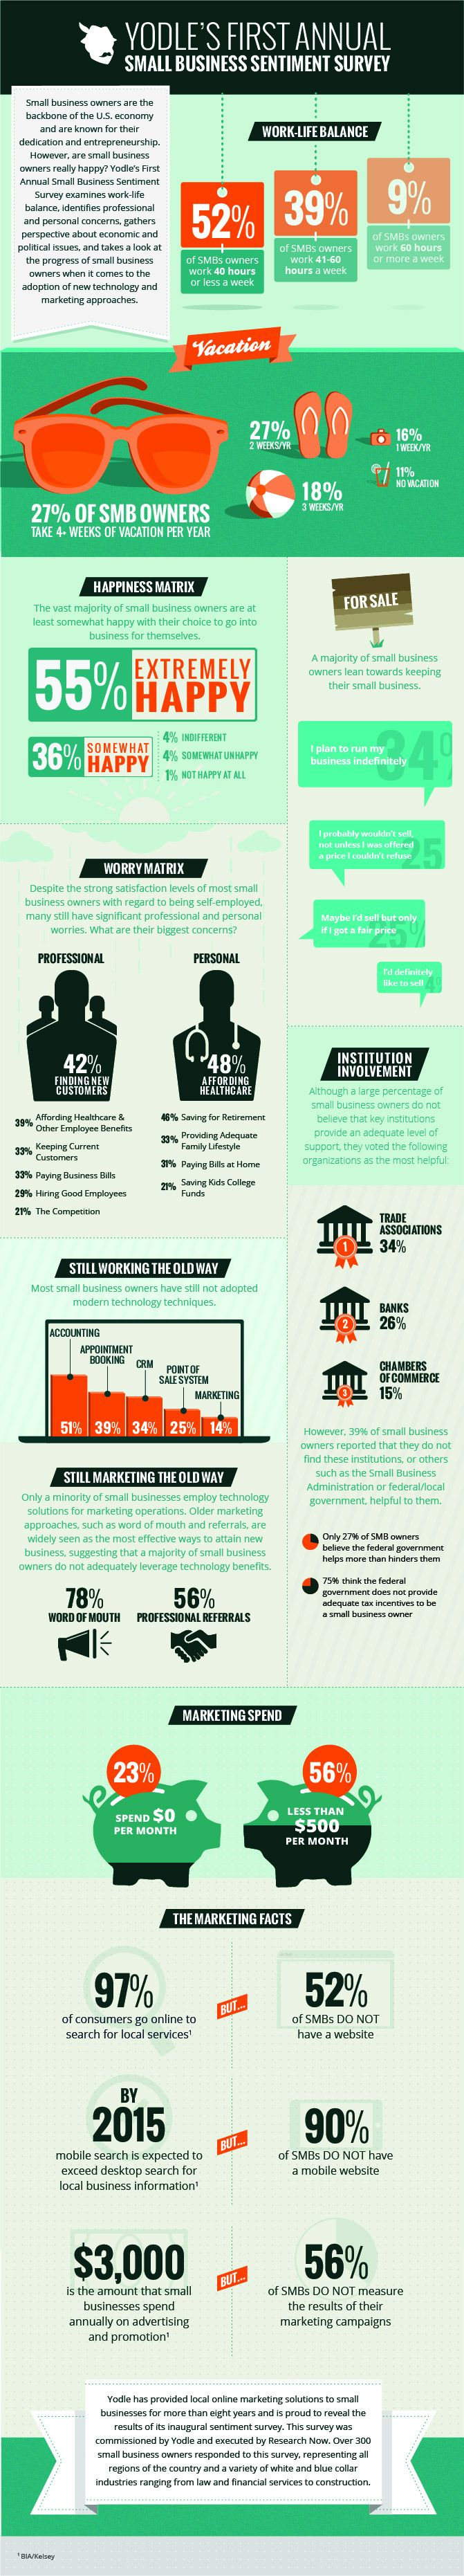 Running your own business is a demanding job, but it offers a sense of autonomy that you just can't get working for someone else. Still, how happy are small-business owners? A recent survey from online marketing company Yodle polled over 300 U.S. small-business owners across a variety of industries and found that most are pretty happy (55 percent).  Read more: http://www.entrepreneur.com/article/228032#ixzz2coik0Q6O